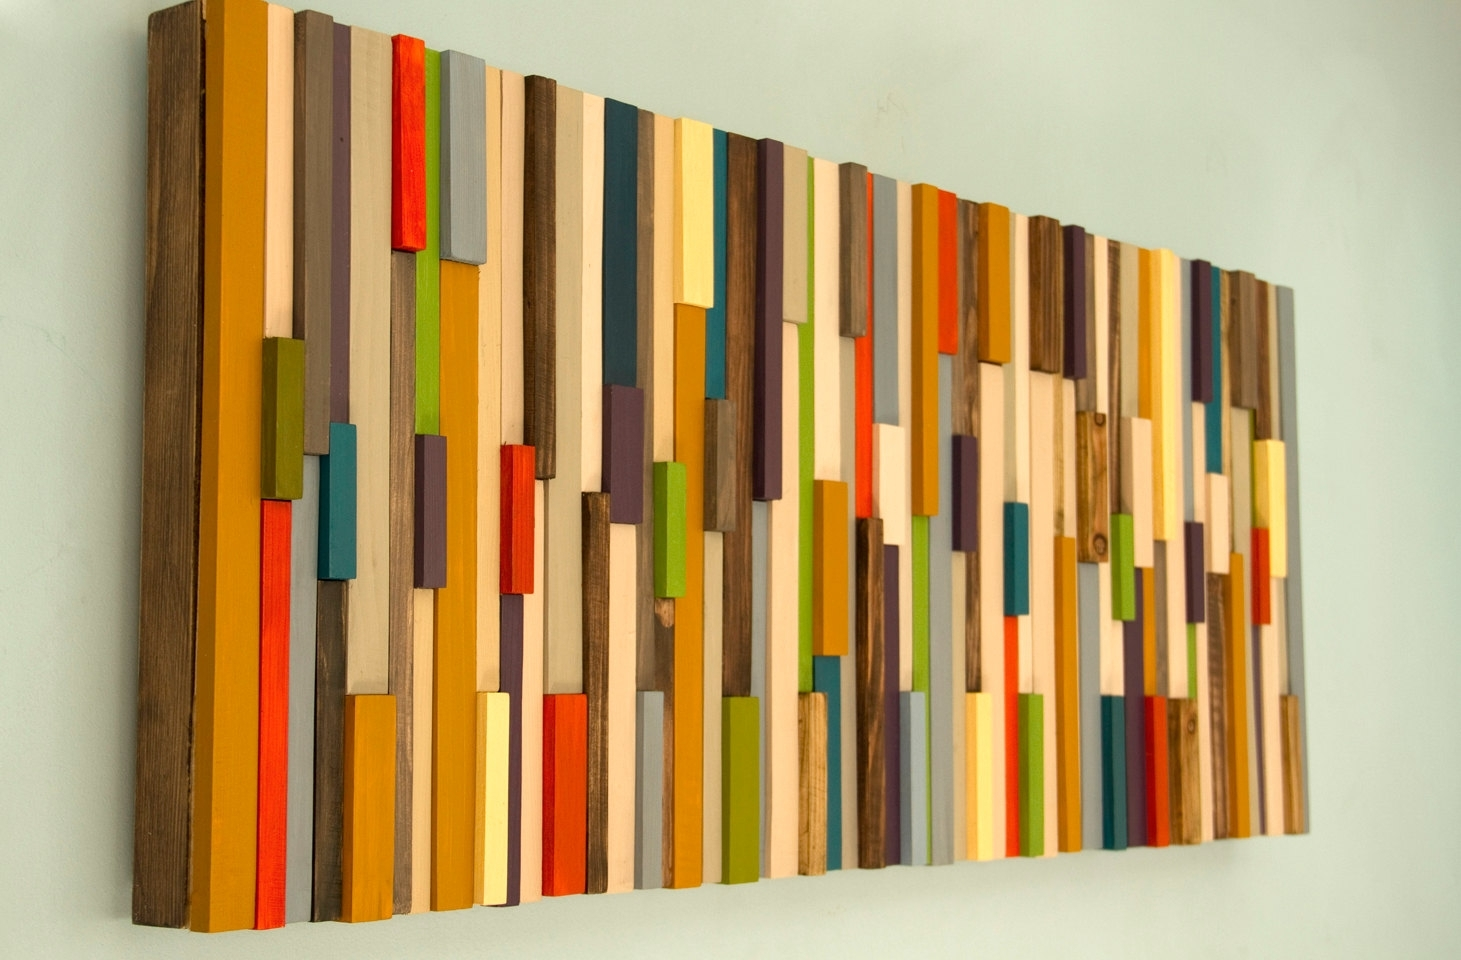 Modern Large Wall Art, Reclaimed Wood Art Sculpture, Mid Century With Regard To Mid Century Wall Art (View 4 of 20)